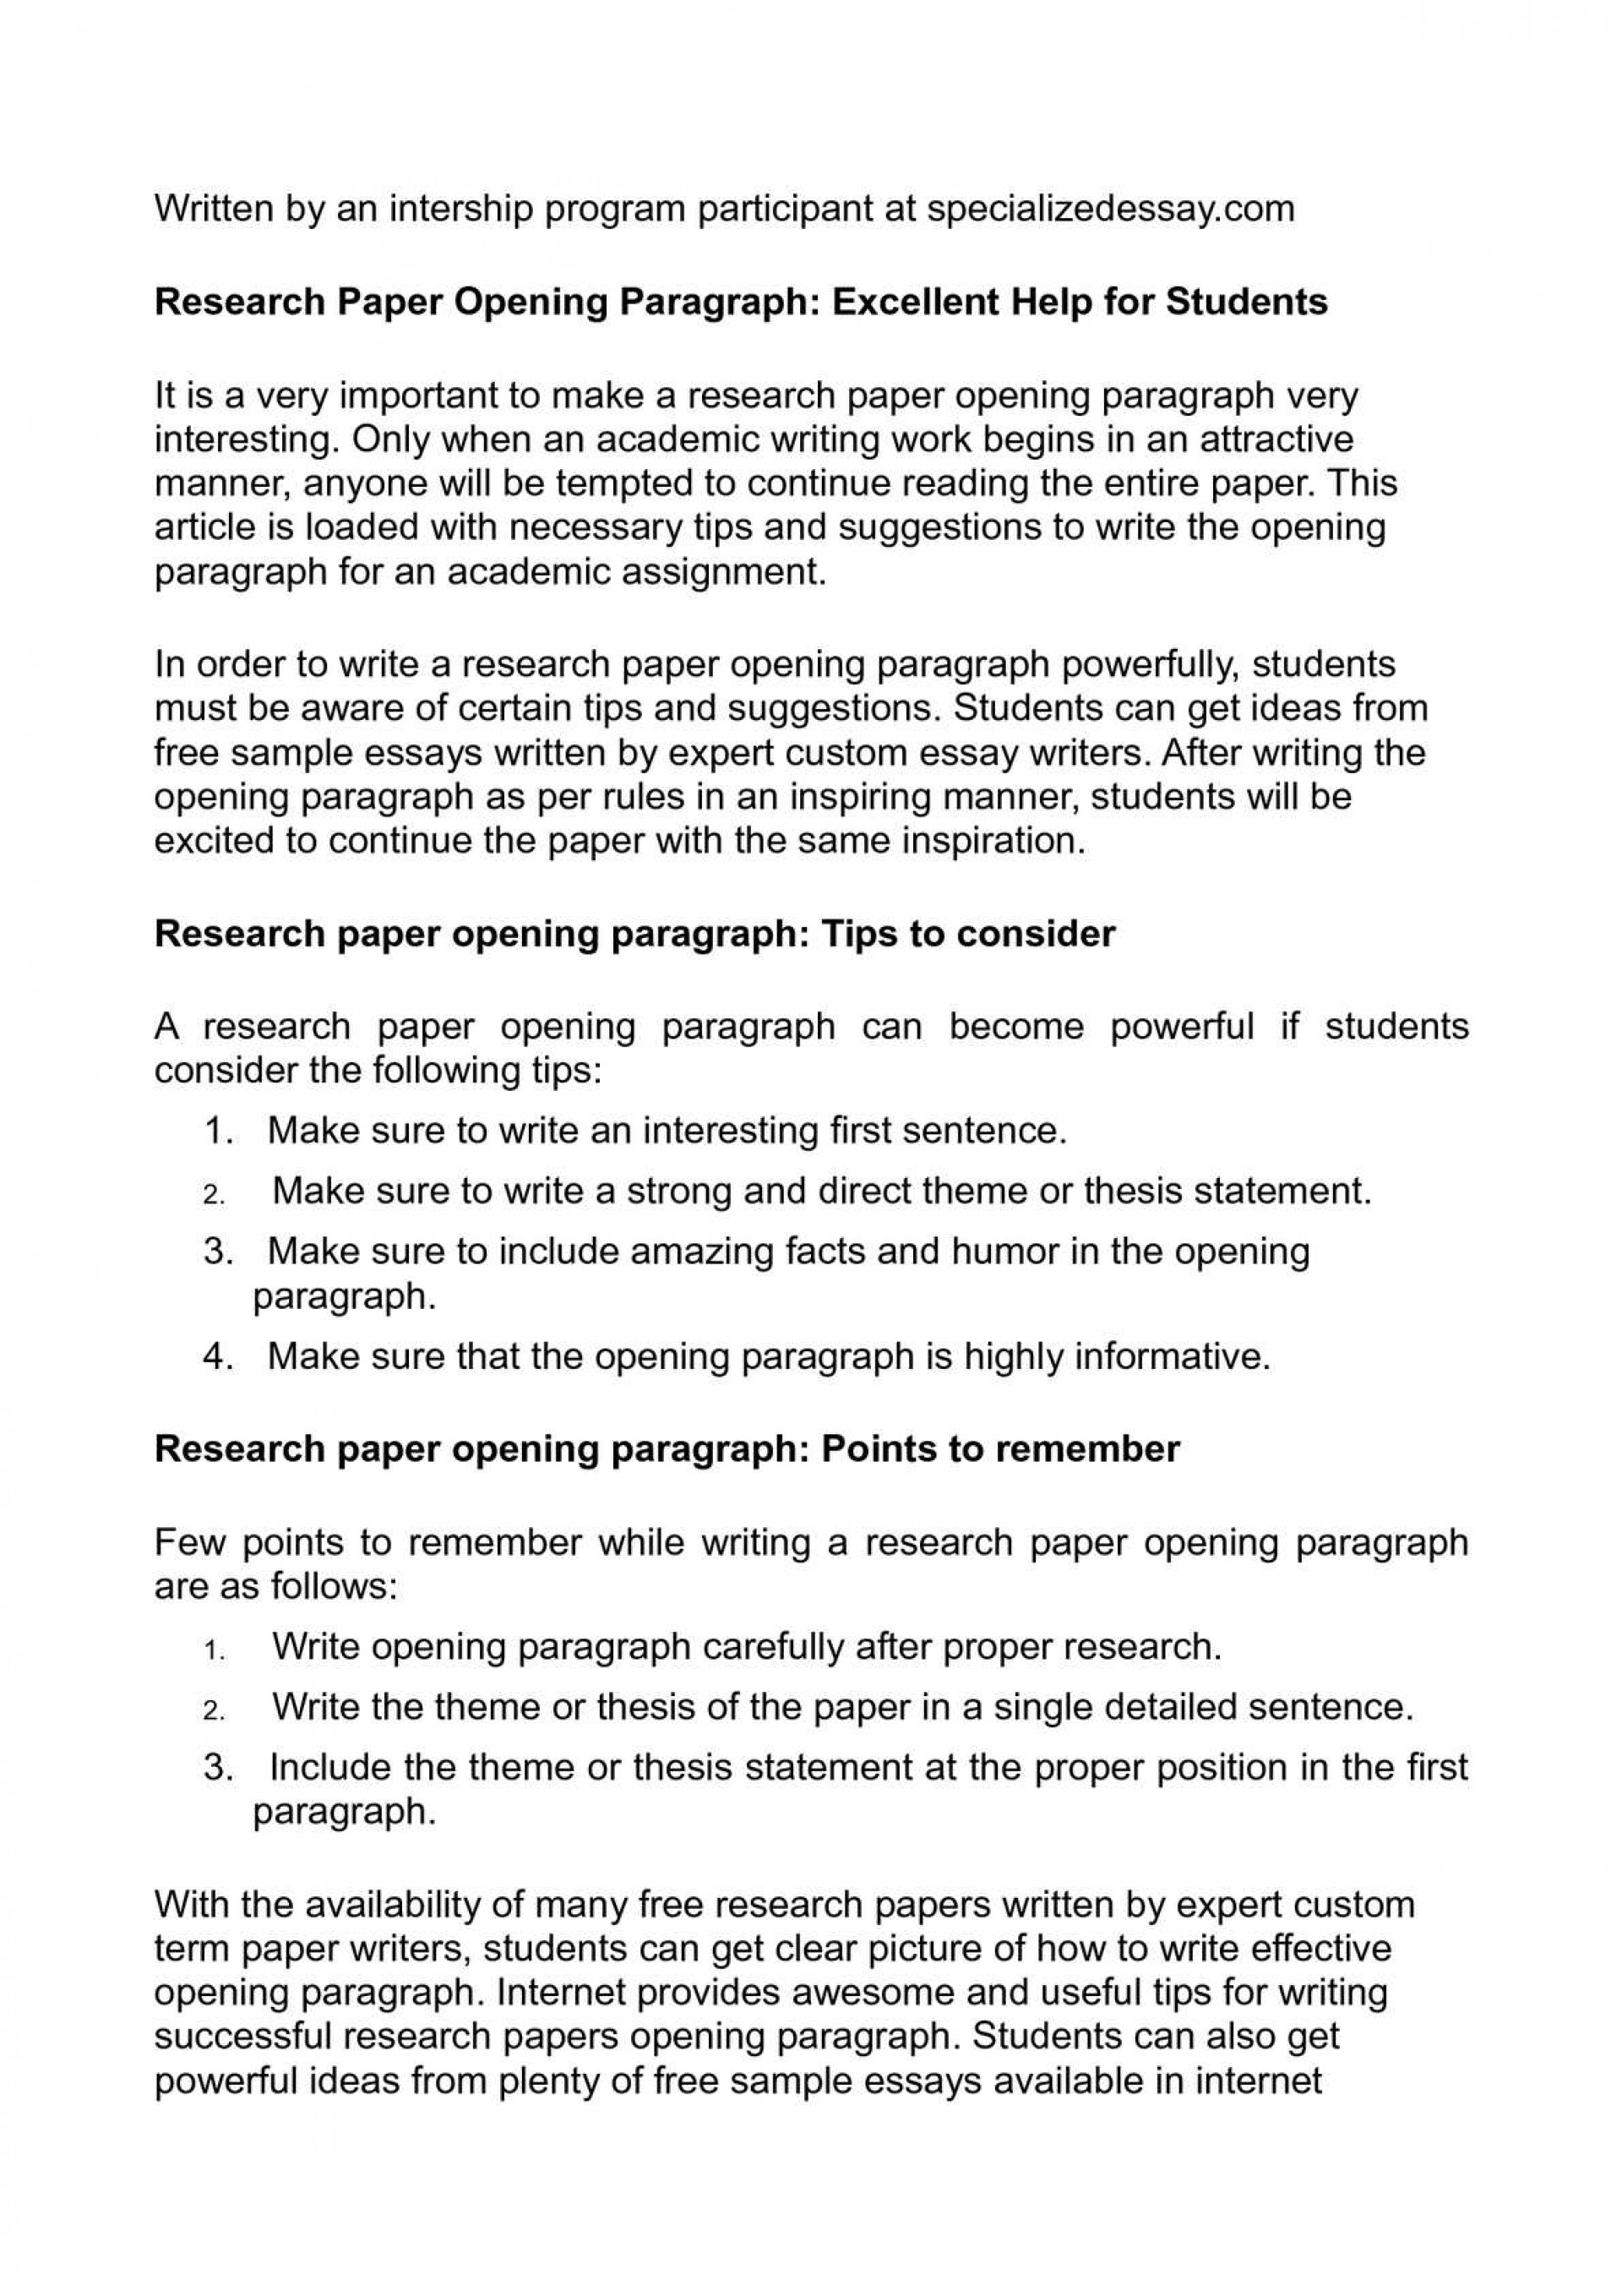 025 P1 Research Paper Free Wonderful Papers Examples Online With Works Cited Website 1920